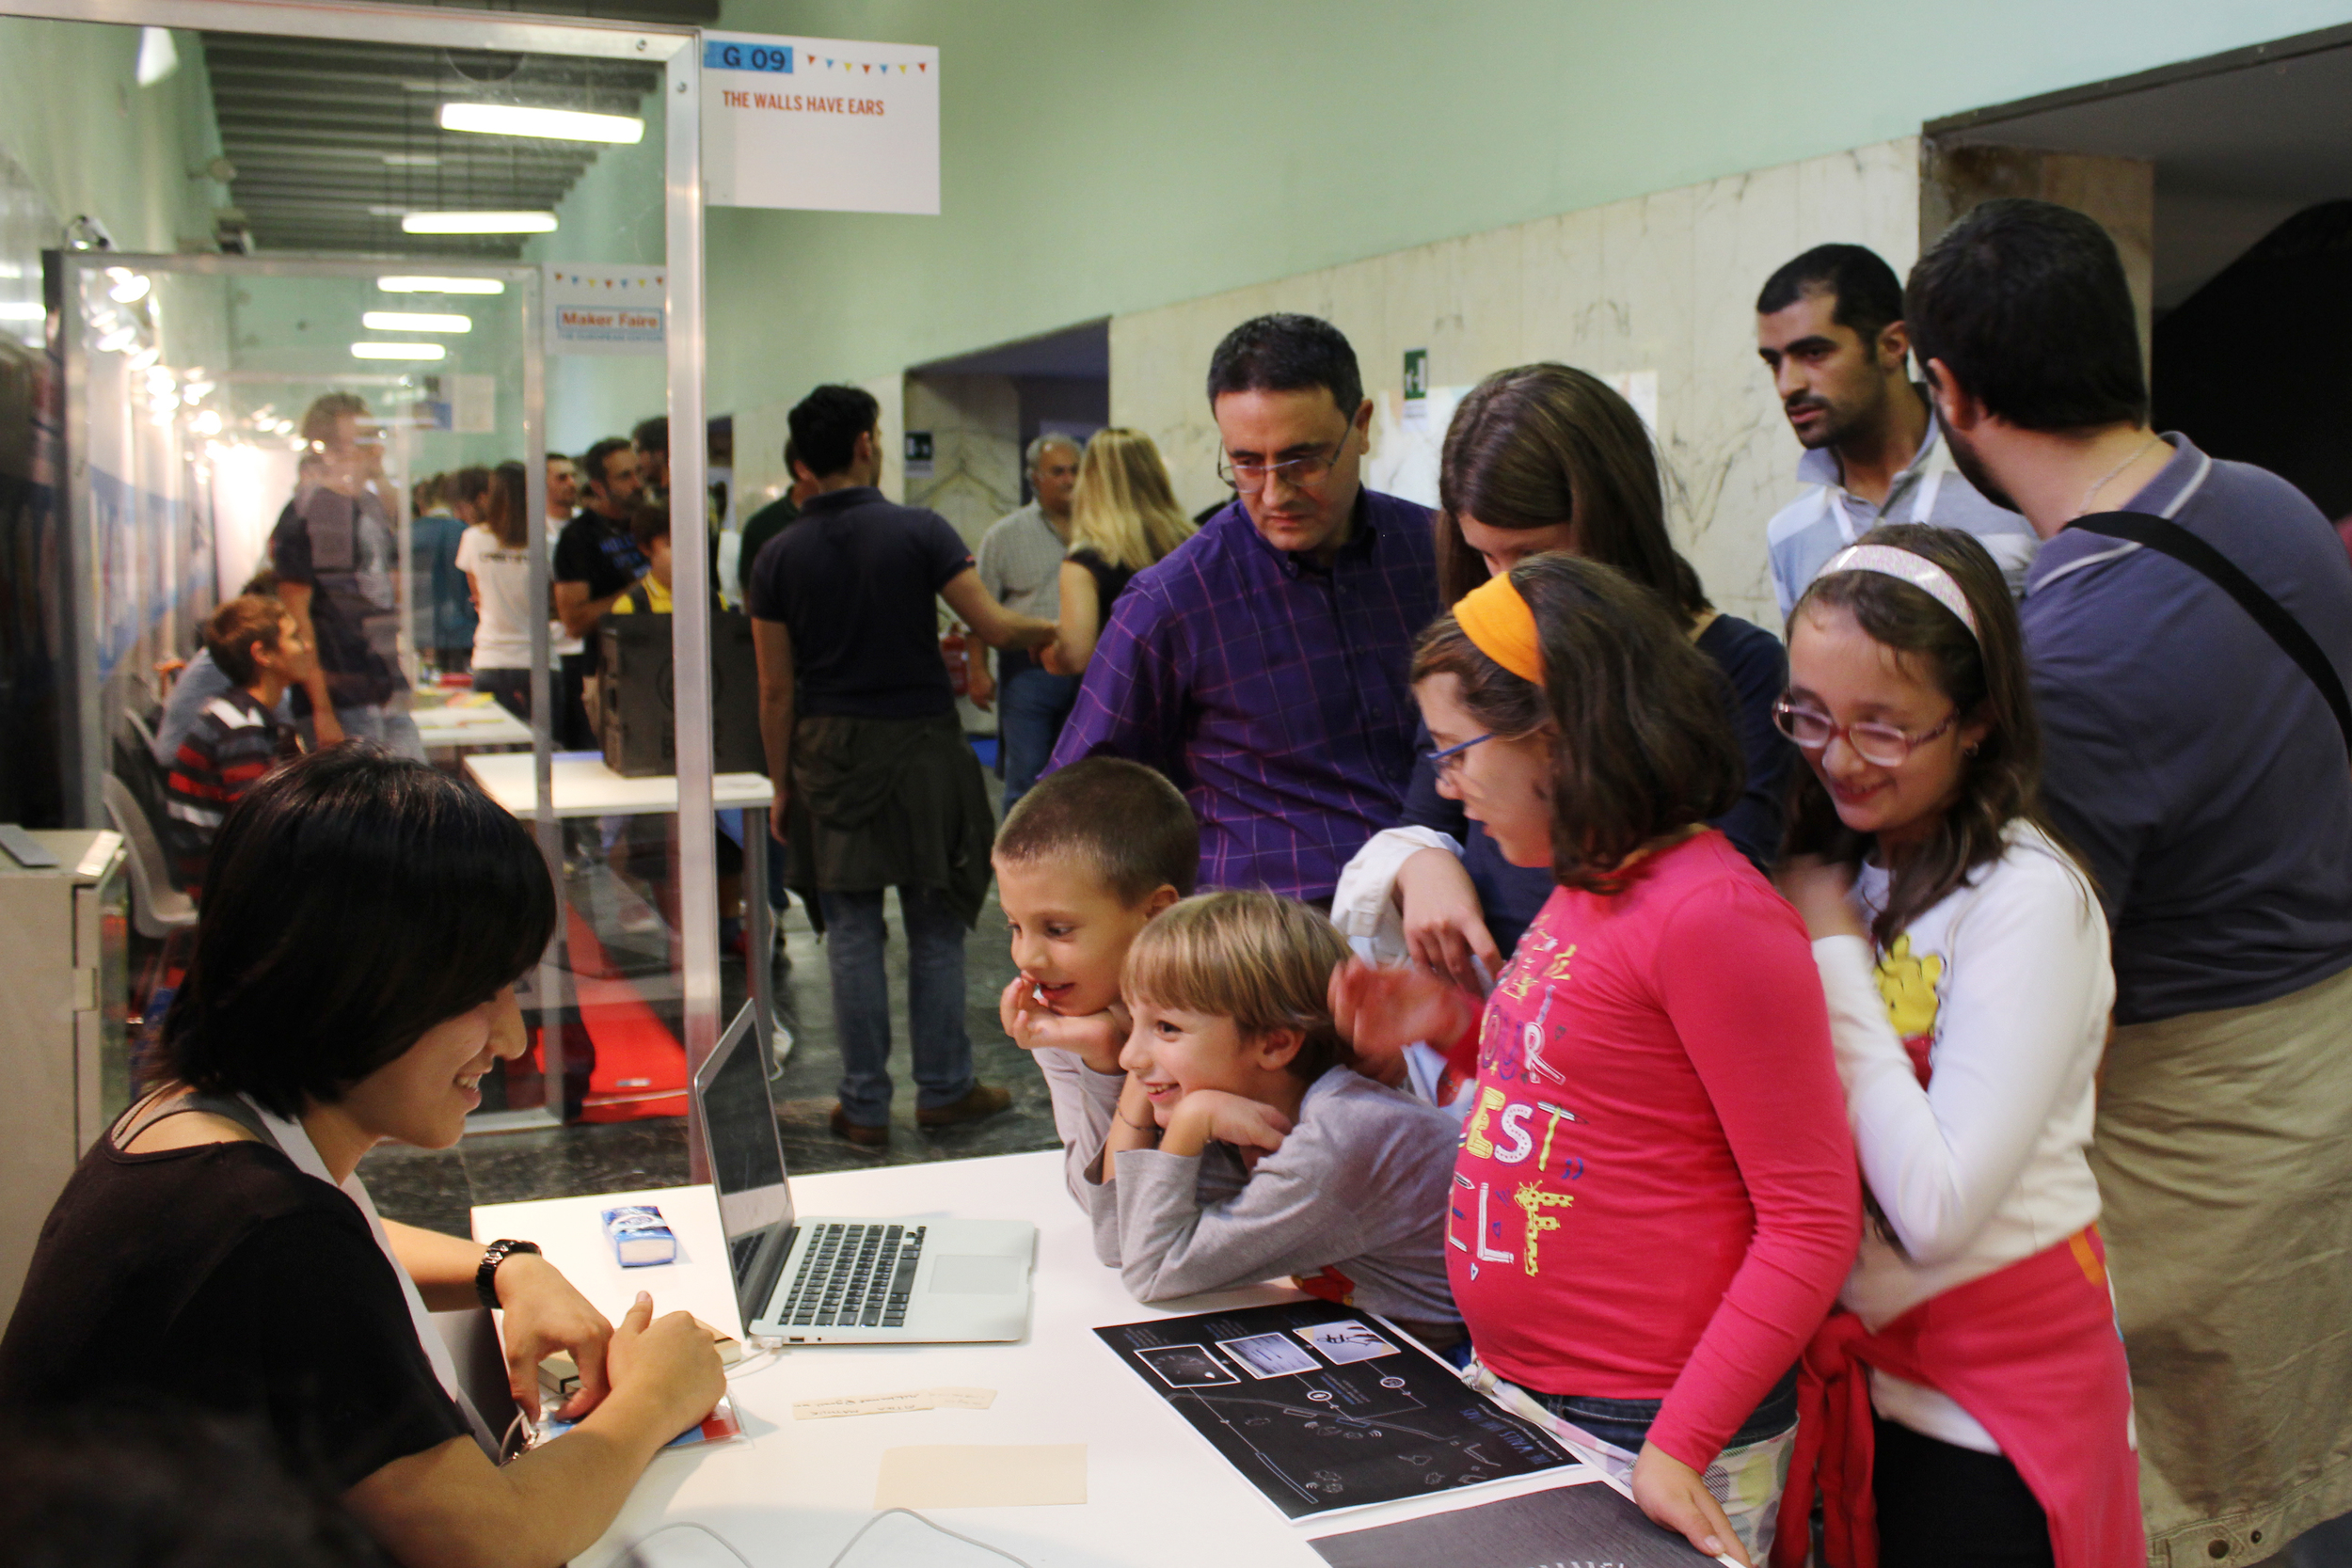 Exhibit at Maker Faire, Rome, 2013